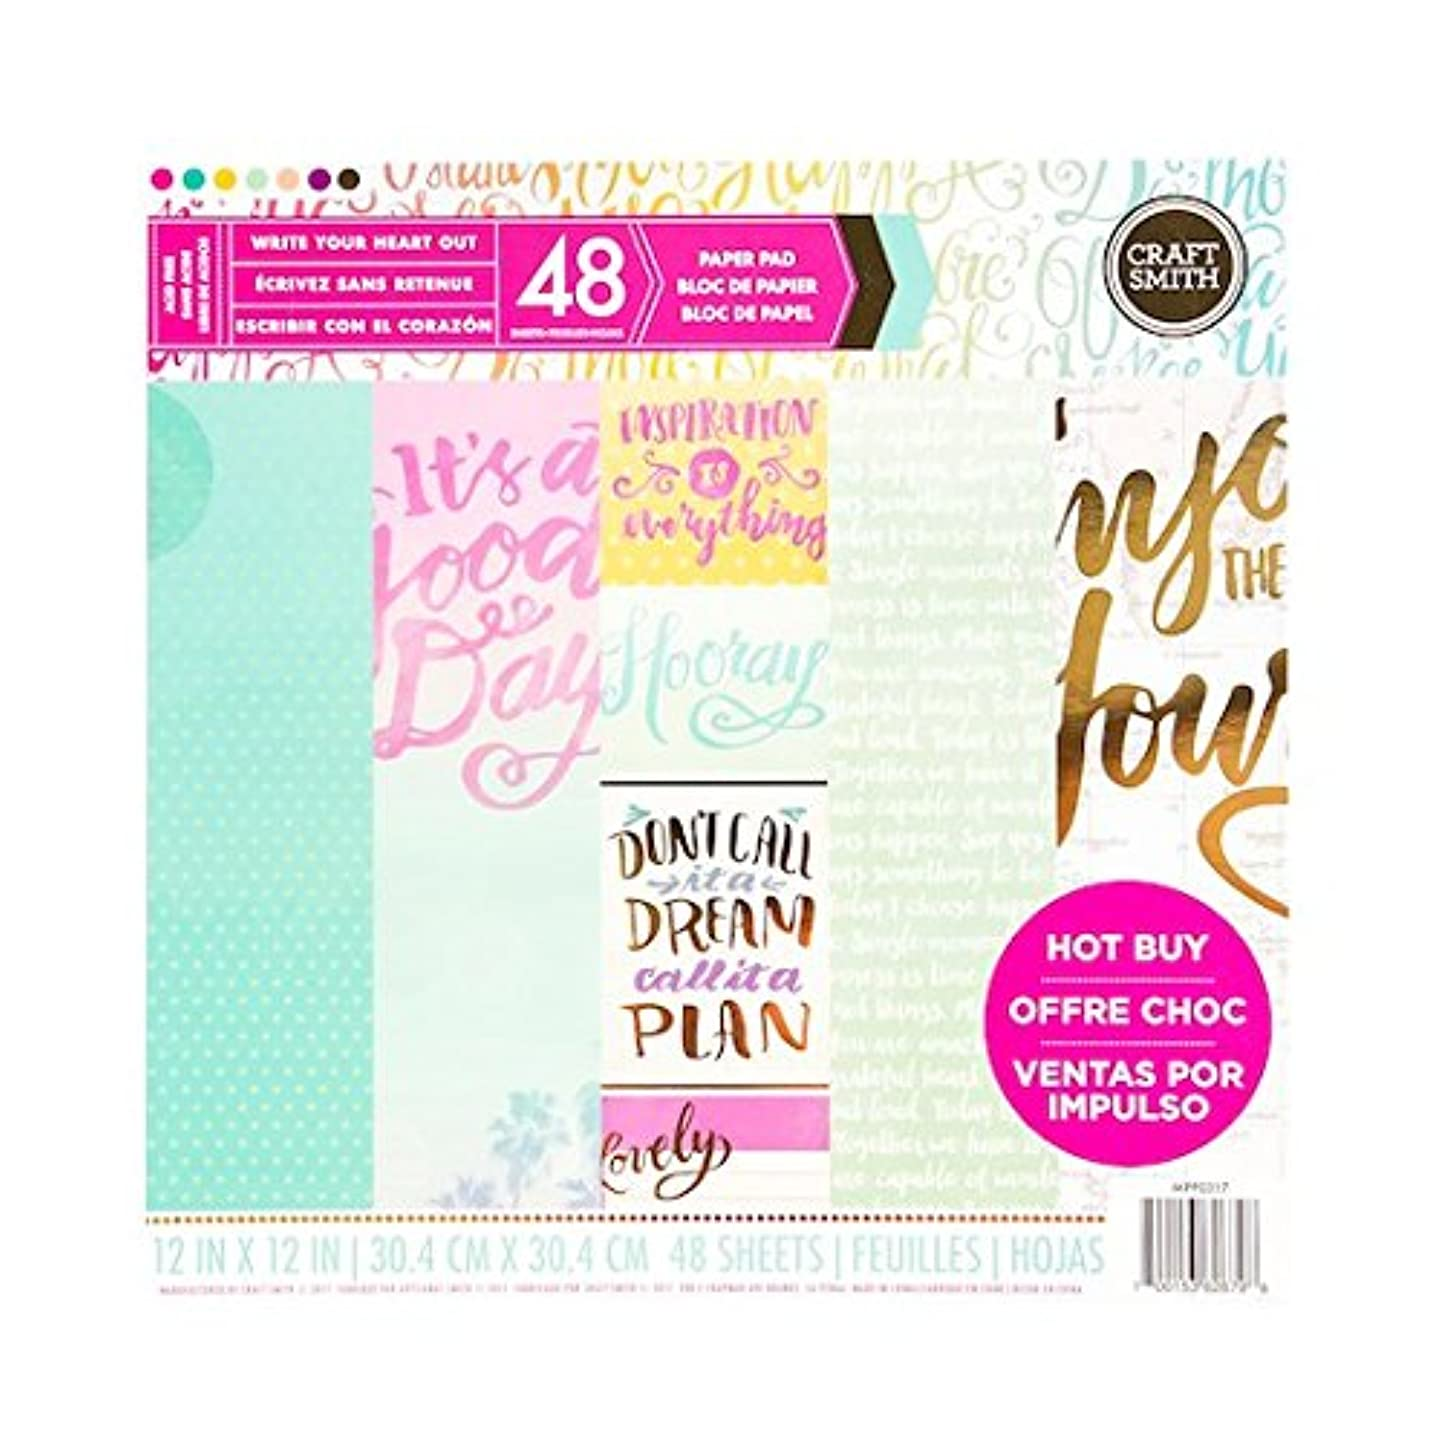 Craft Smith WRITE YOIR HEART OUT Paper Pad 48 Printed Sheets 12 x 12 Scrapbook